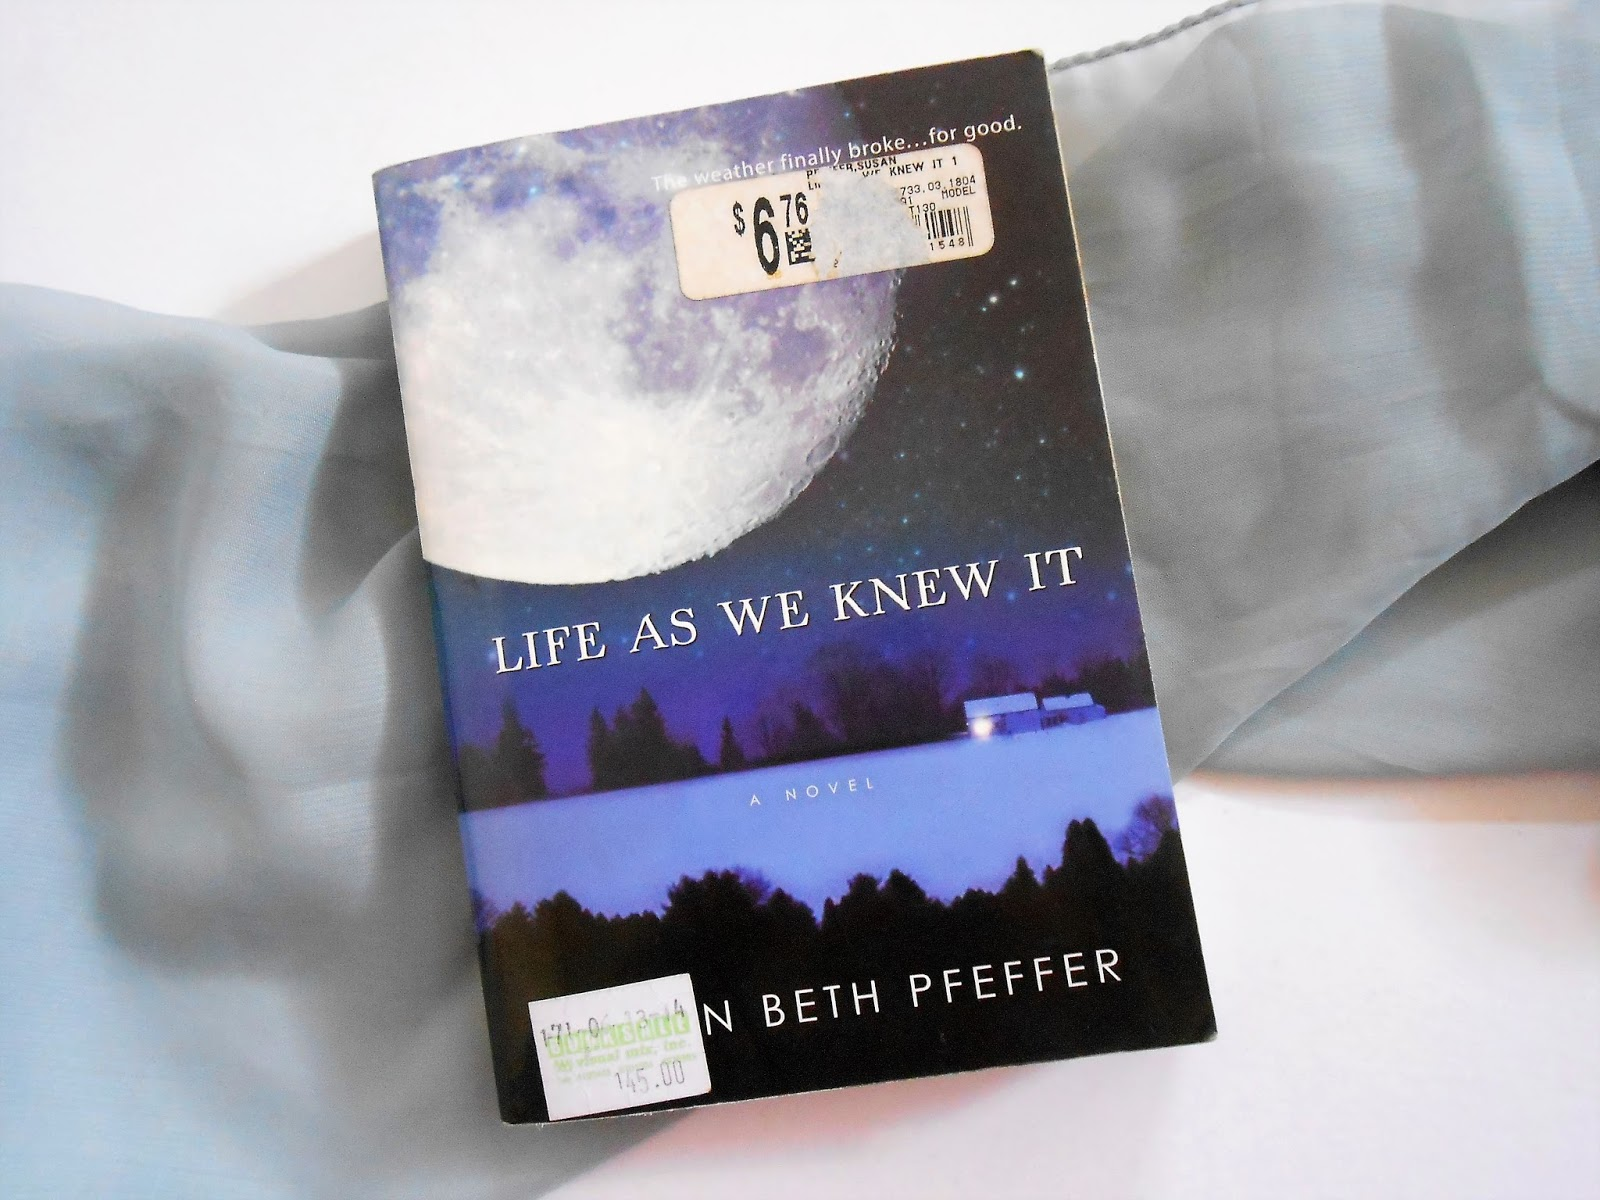 a critique of the book life as we know it by susan beth preffer Life as we knew it susan beth pfeffer has written several companion novels to life as we knew it ©2018 perma-bound books.